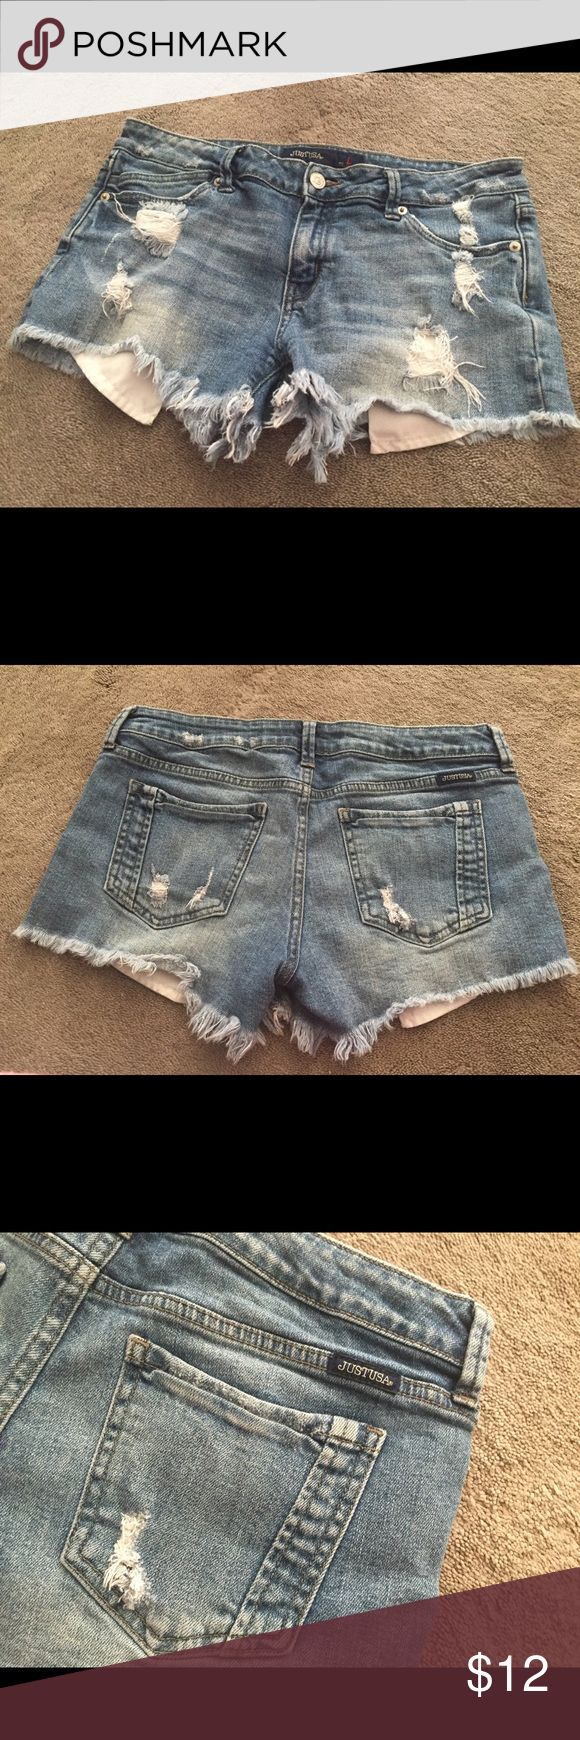 Destroyed denim short shorts, used good condition Very cute denim shorts destroyed with a 3 inch inseam and frayed hem Just USA Shorts Jean Shorts